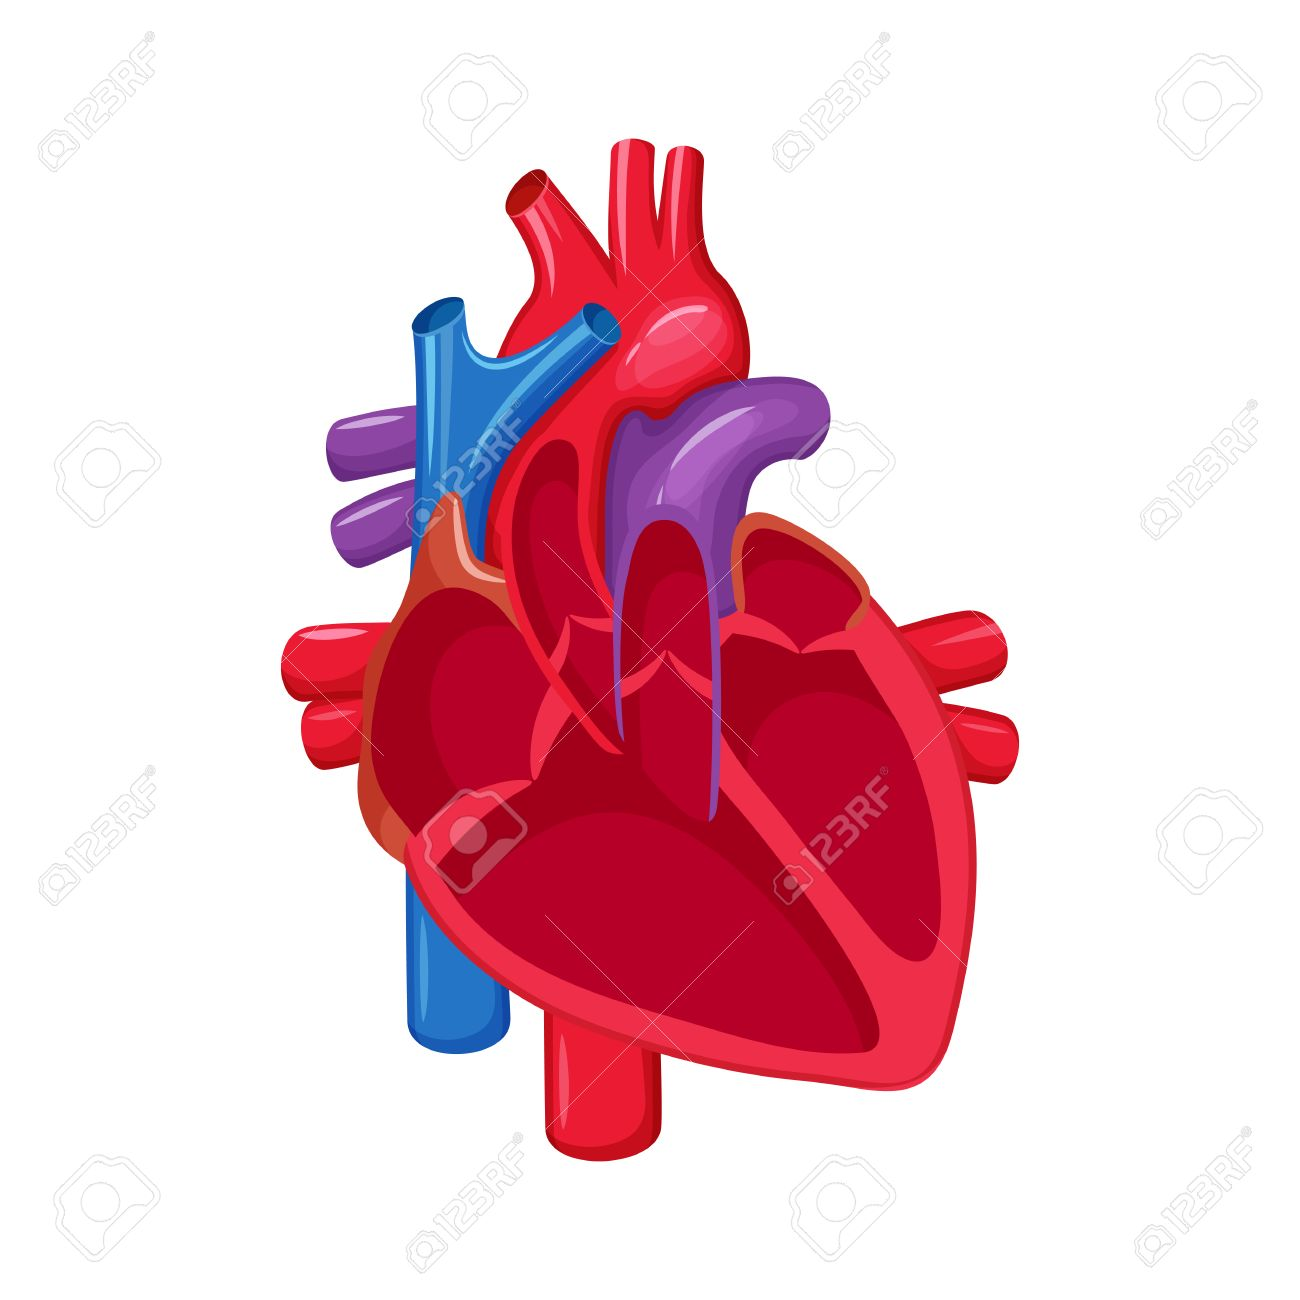 Human Heart Anatomy. Heart Medical Science Vector Illustration ...